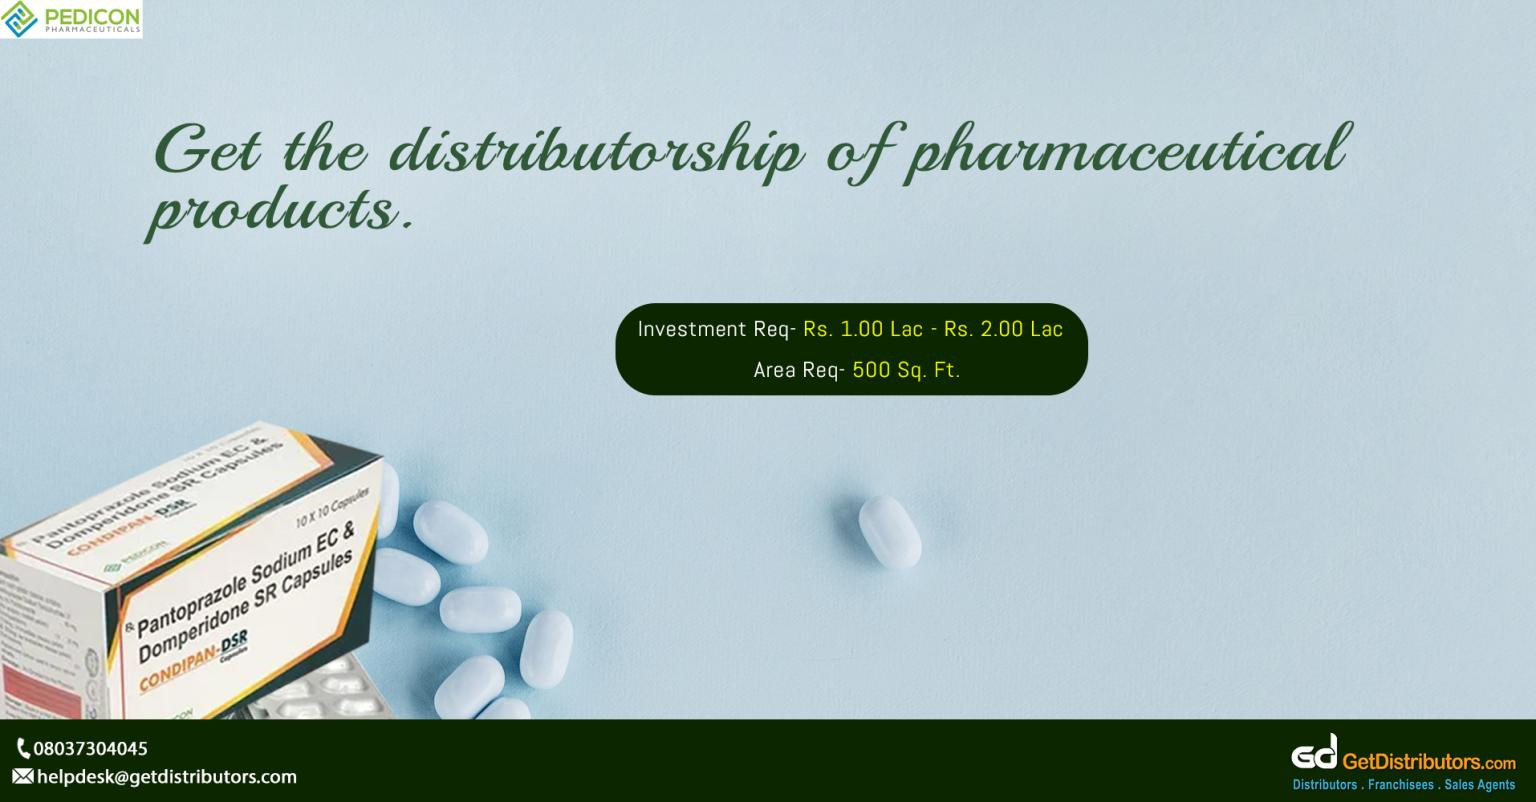 Offering a wide range of tablets and capsules for distribution